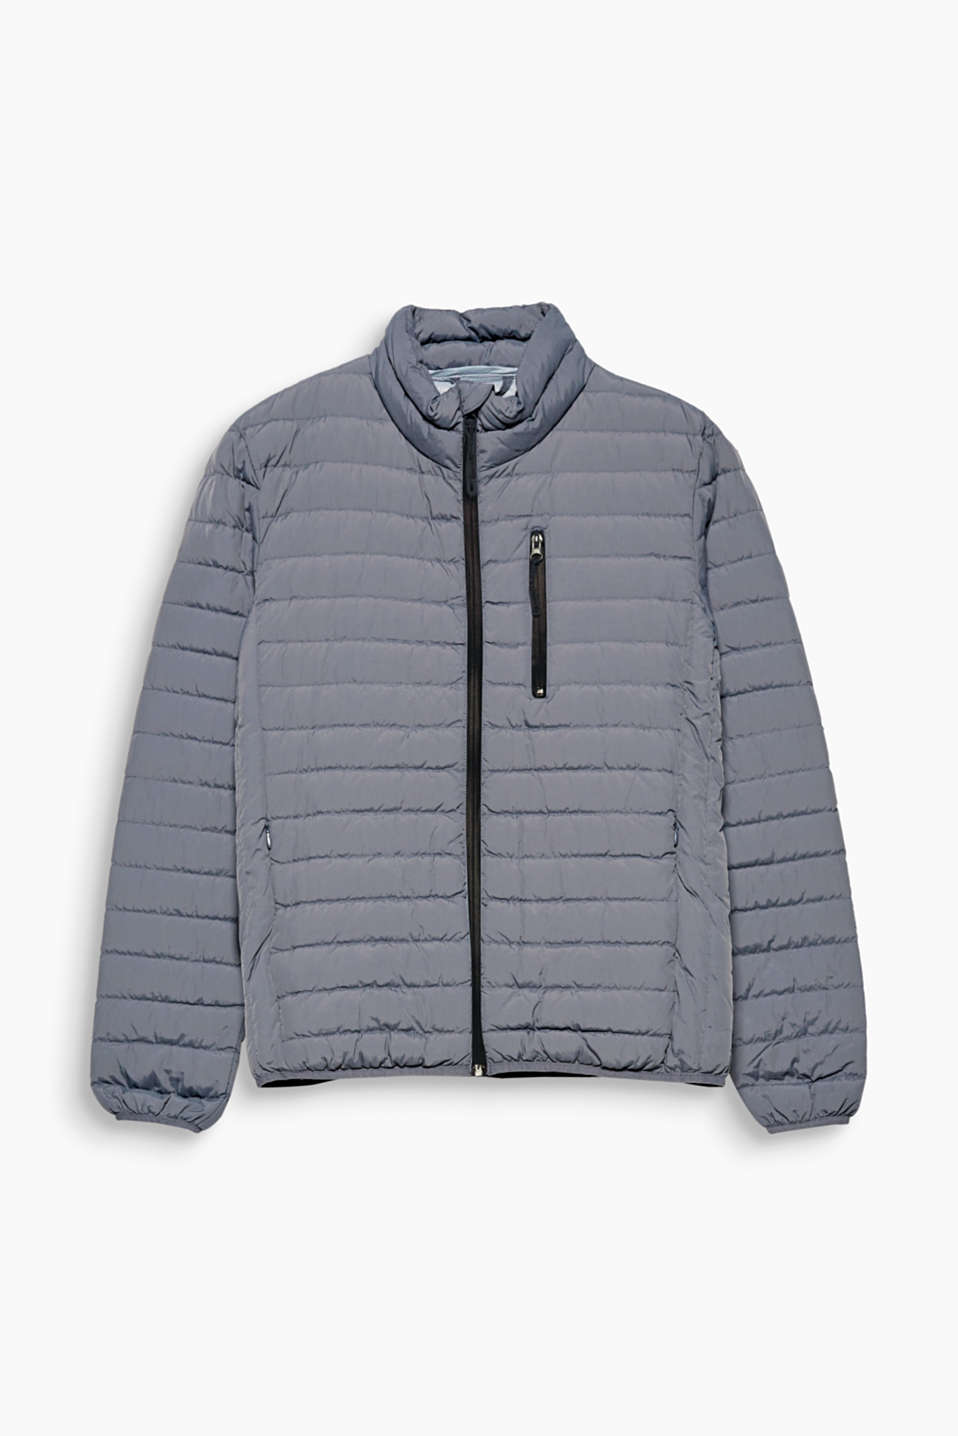 Classic outerwear: this timeless, quilted jacket filled with RDS certified down and feathers.